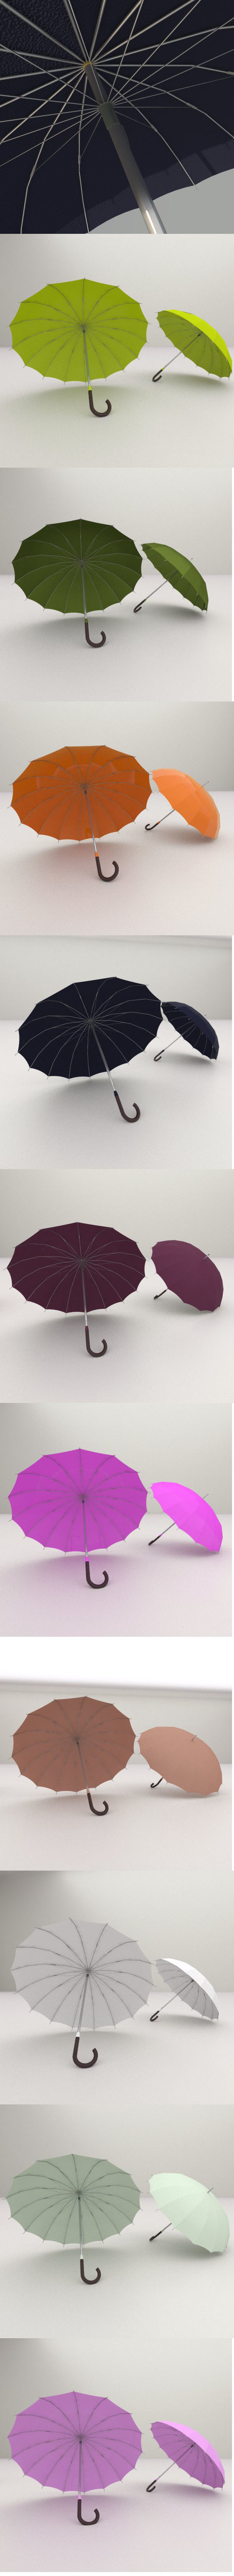 10 Umbrellas  package - 3DOcean Item for Sale